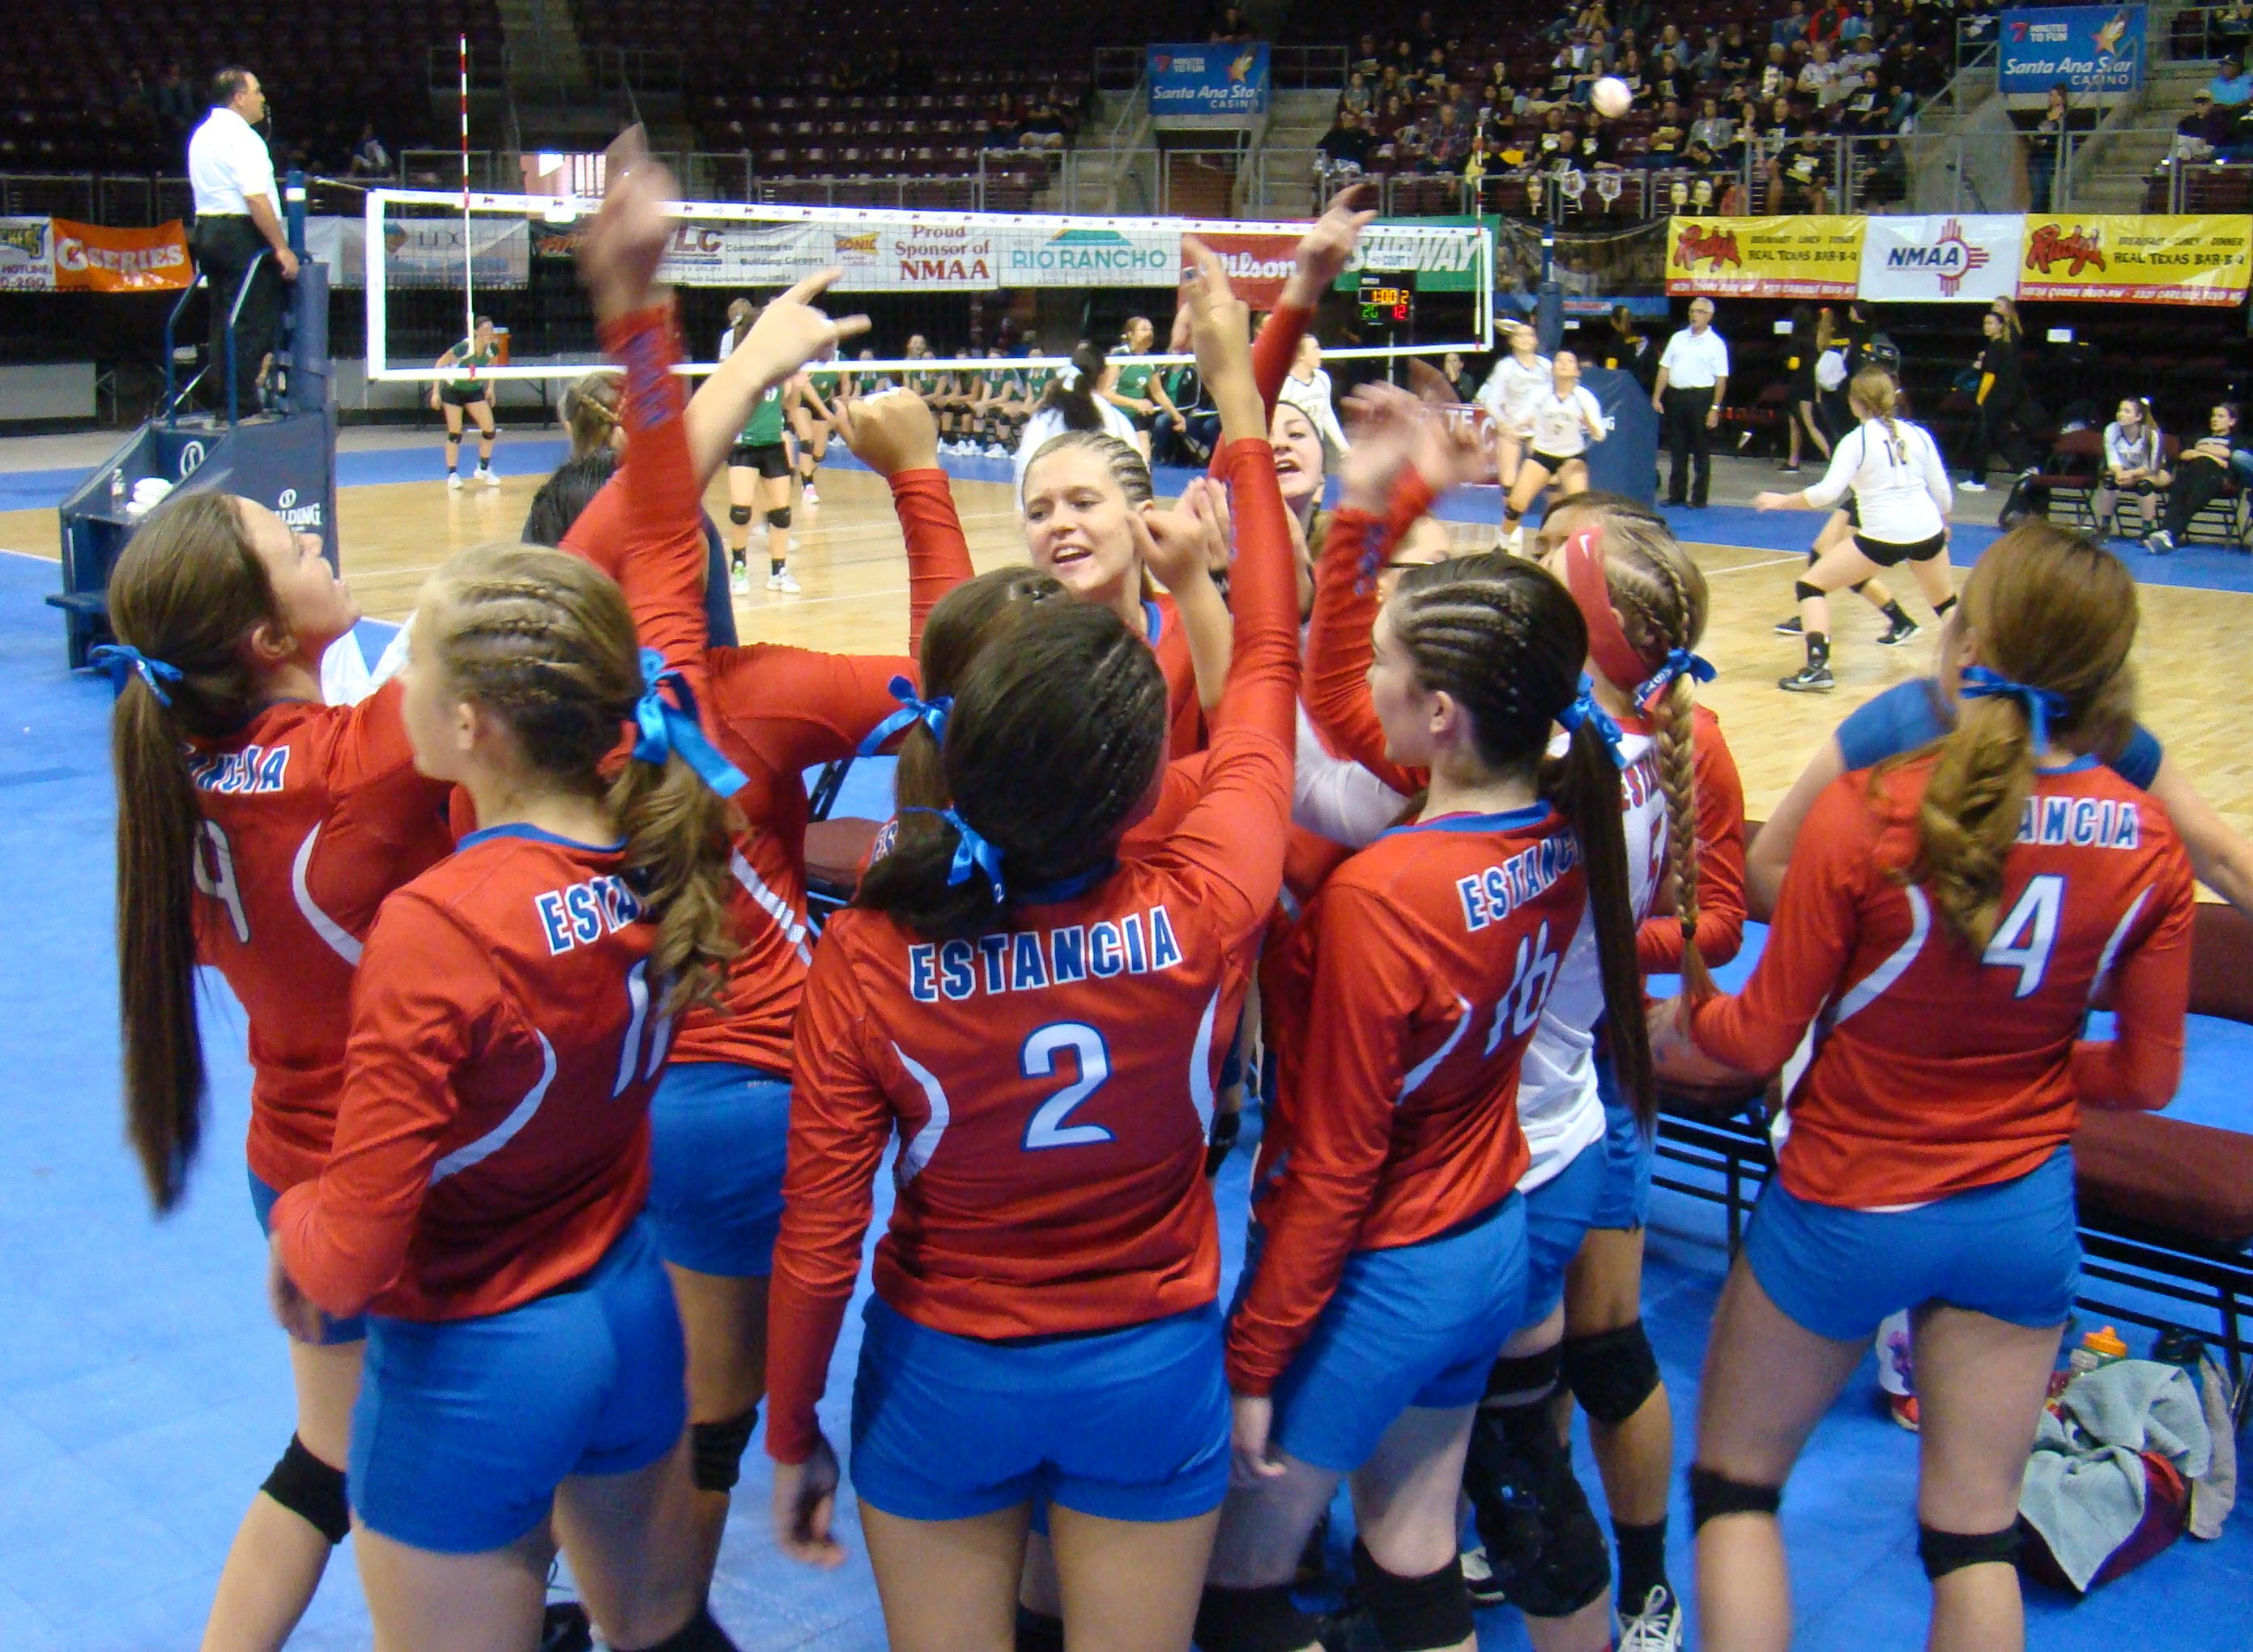 Estancia's volleyball team sweeps Desert Academy before loss in semis